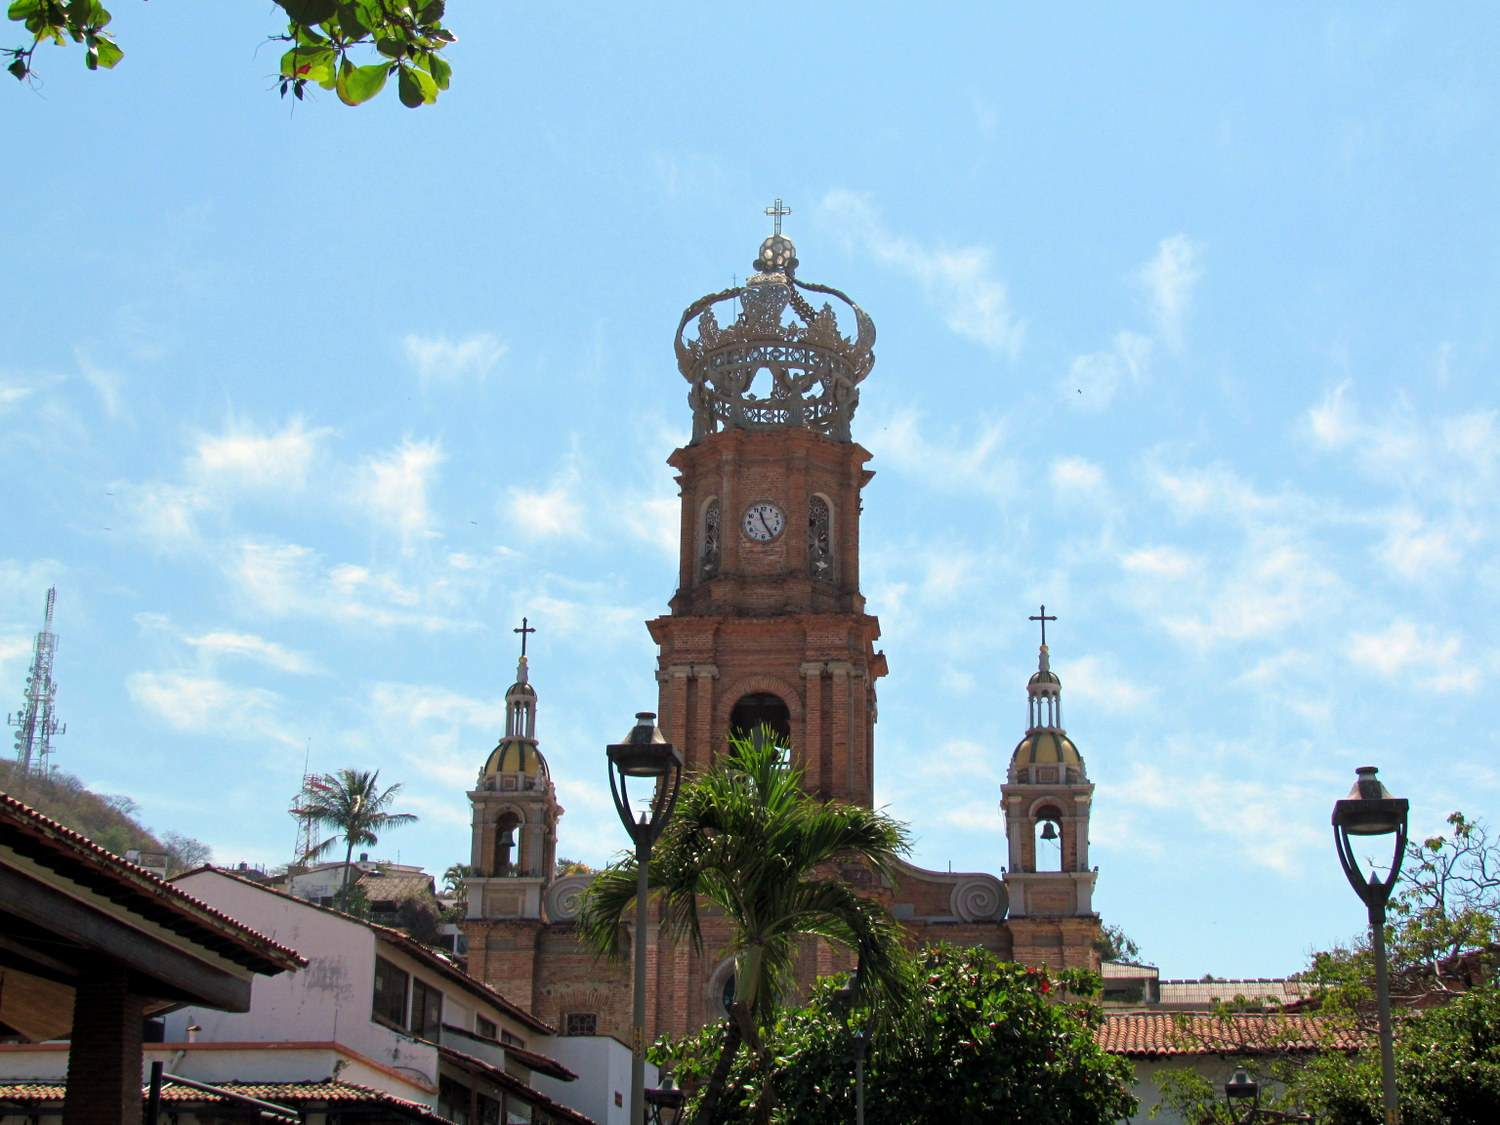 Puerto Vallarta's Cathedral with its distinctive crown